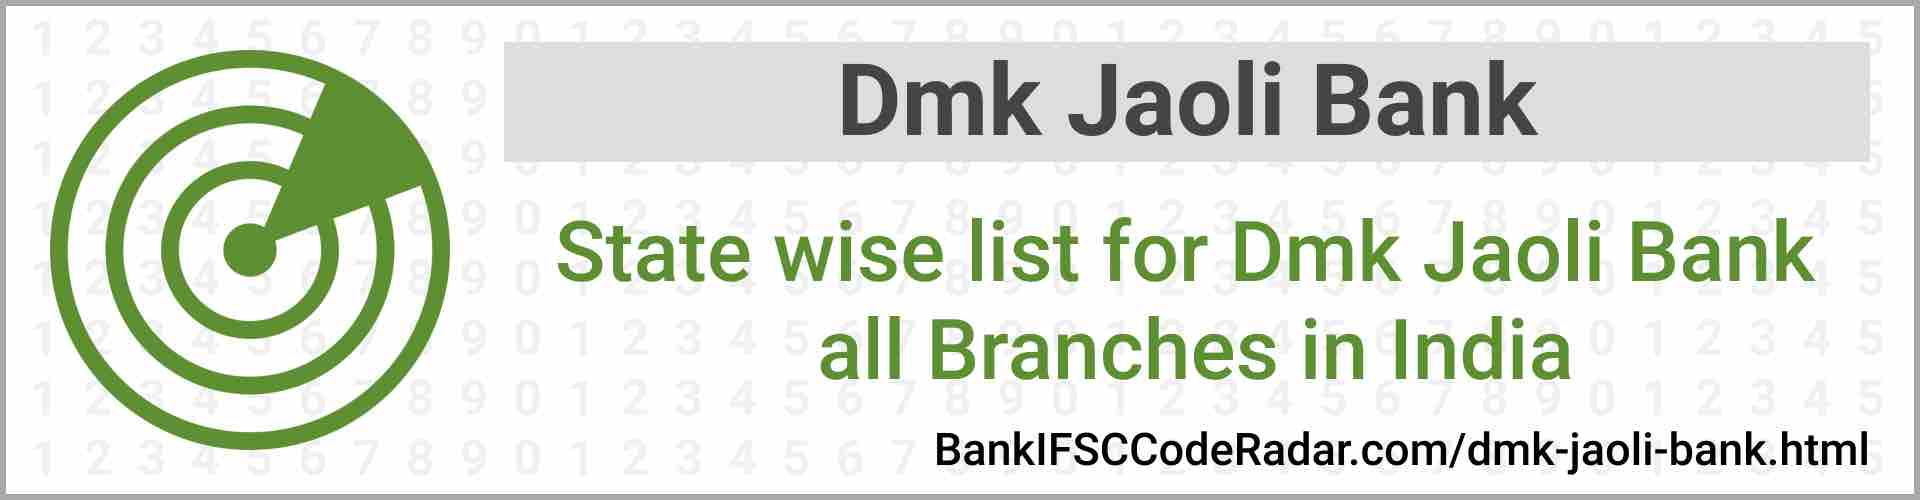 Dmk Jaoli Bank All Branches India